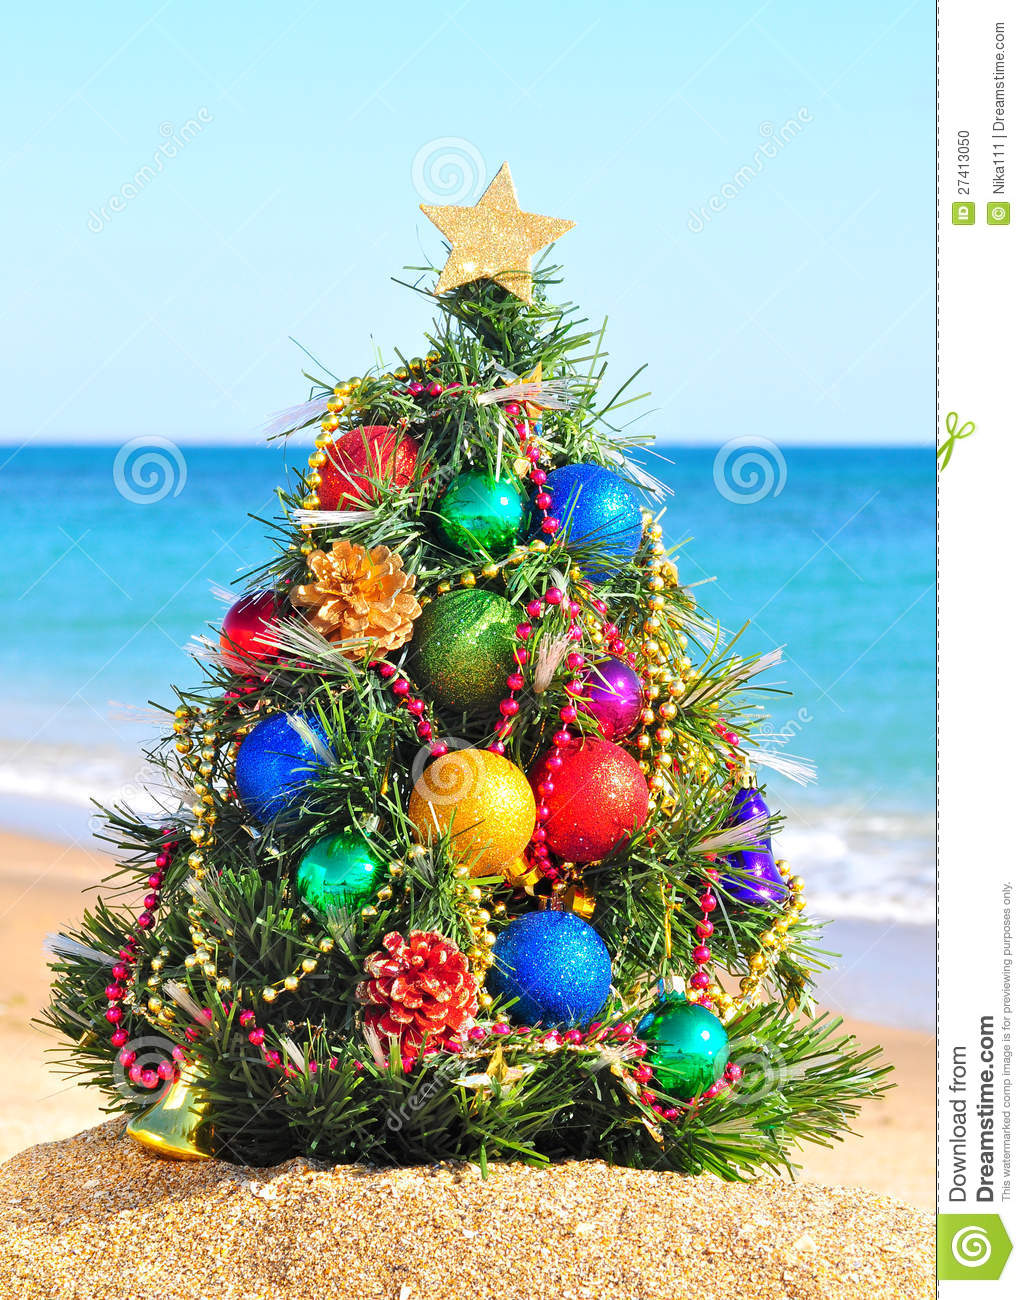 Christmas Tree In The Beach Stock Photo Image 27413050